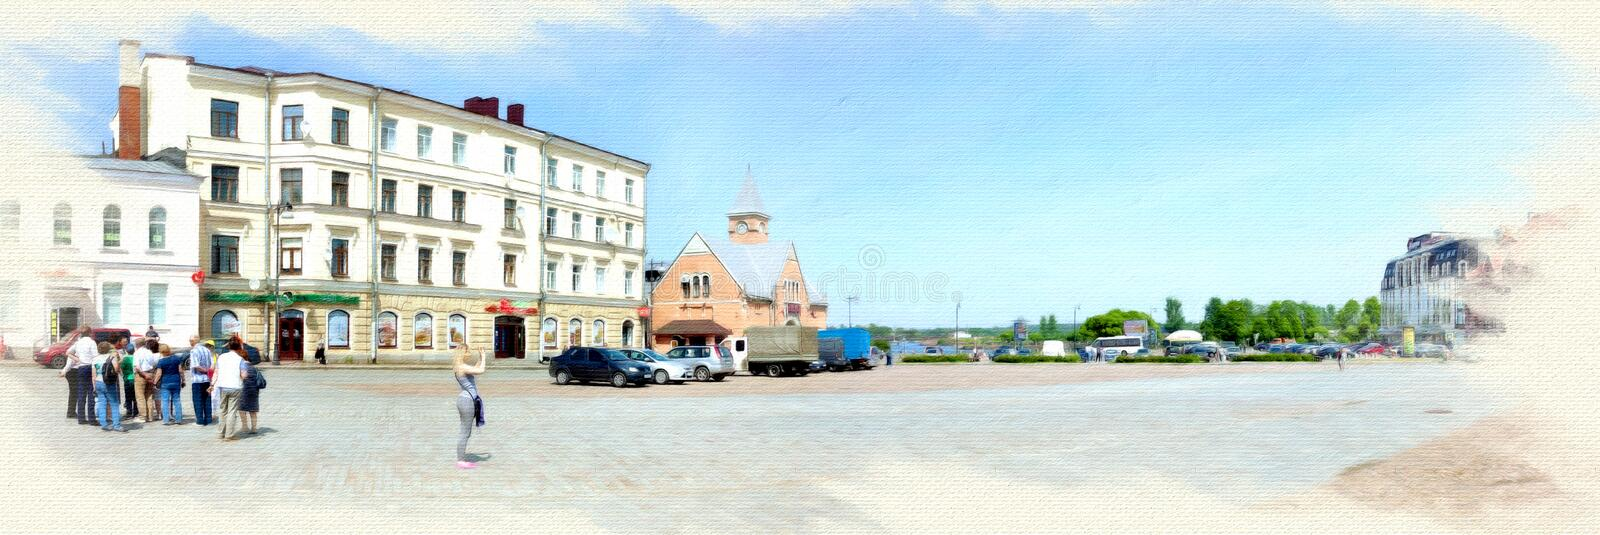 Imitation de l'image Place du march? dans Vyborg Panorama photographie stock libre de droits